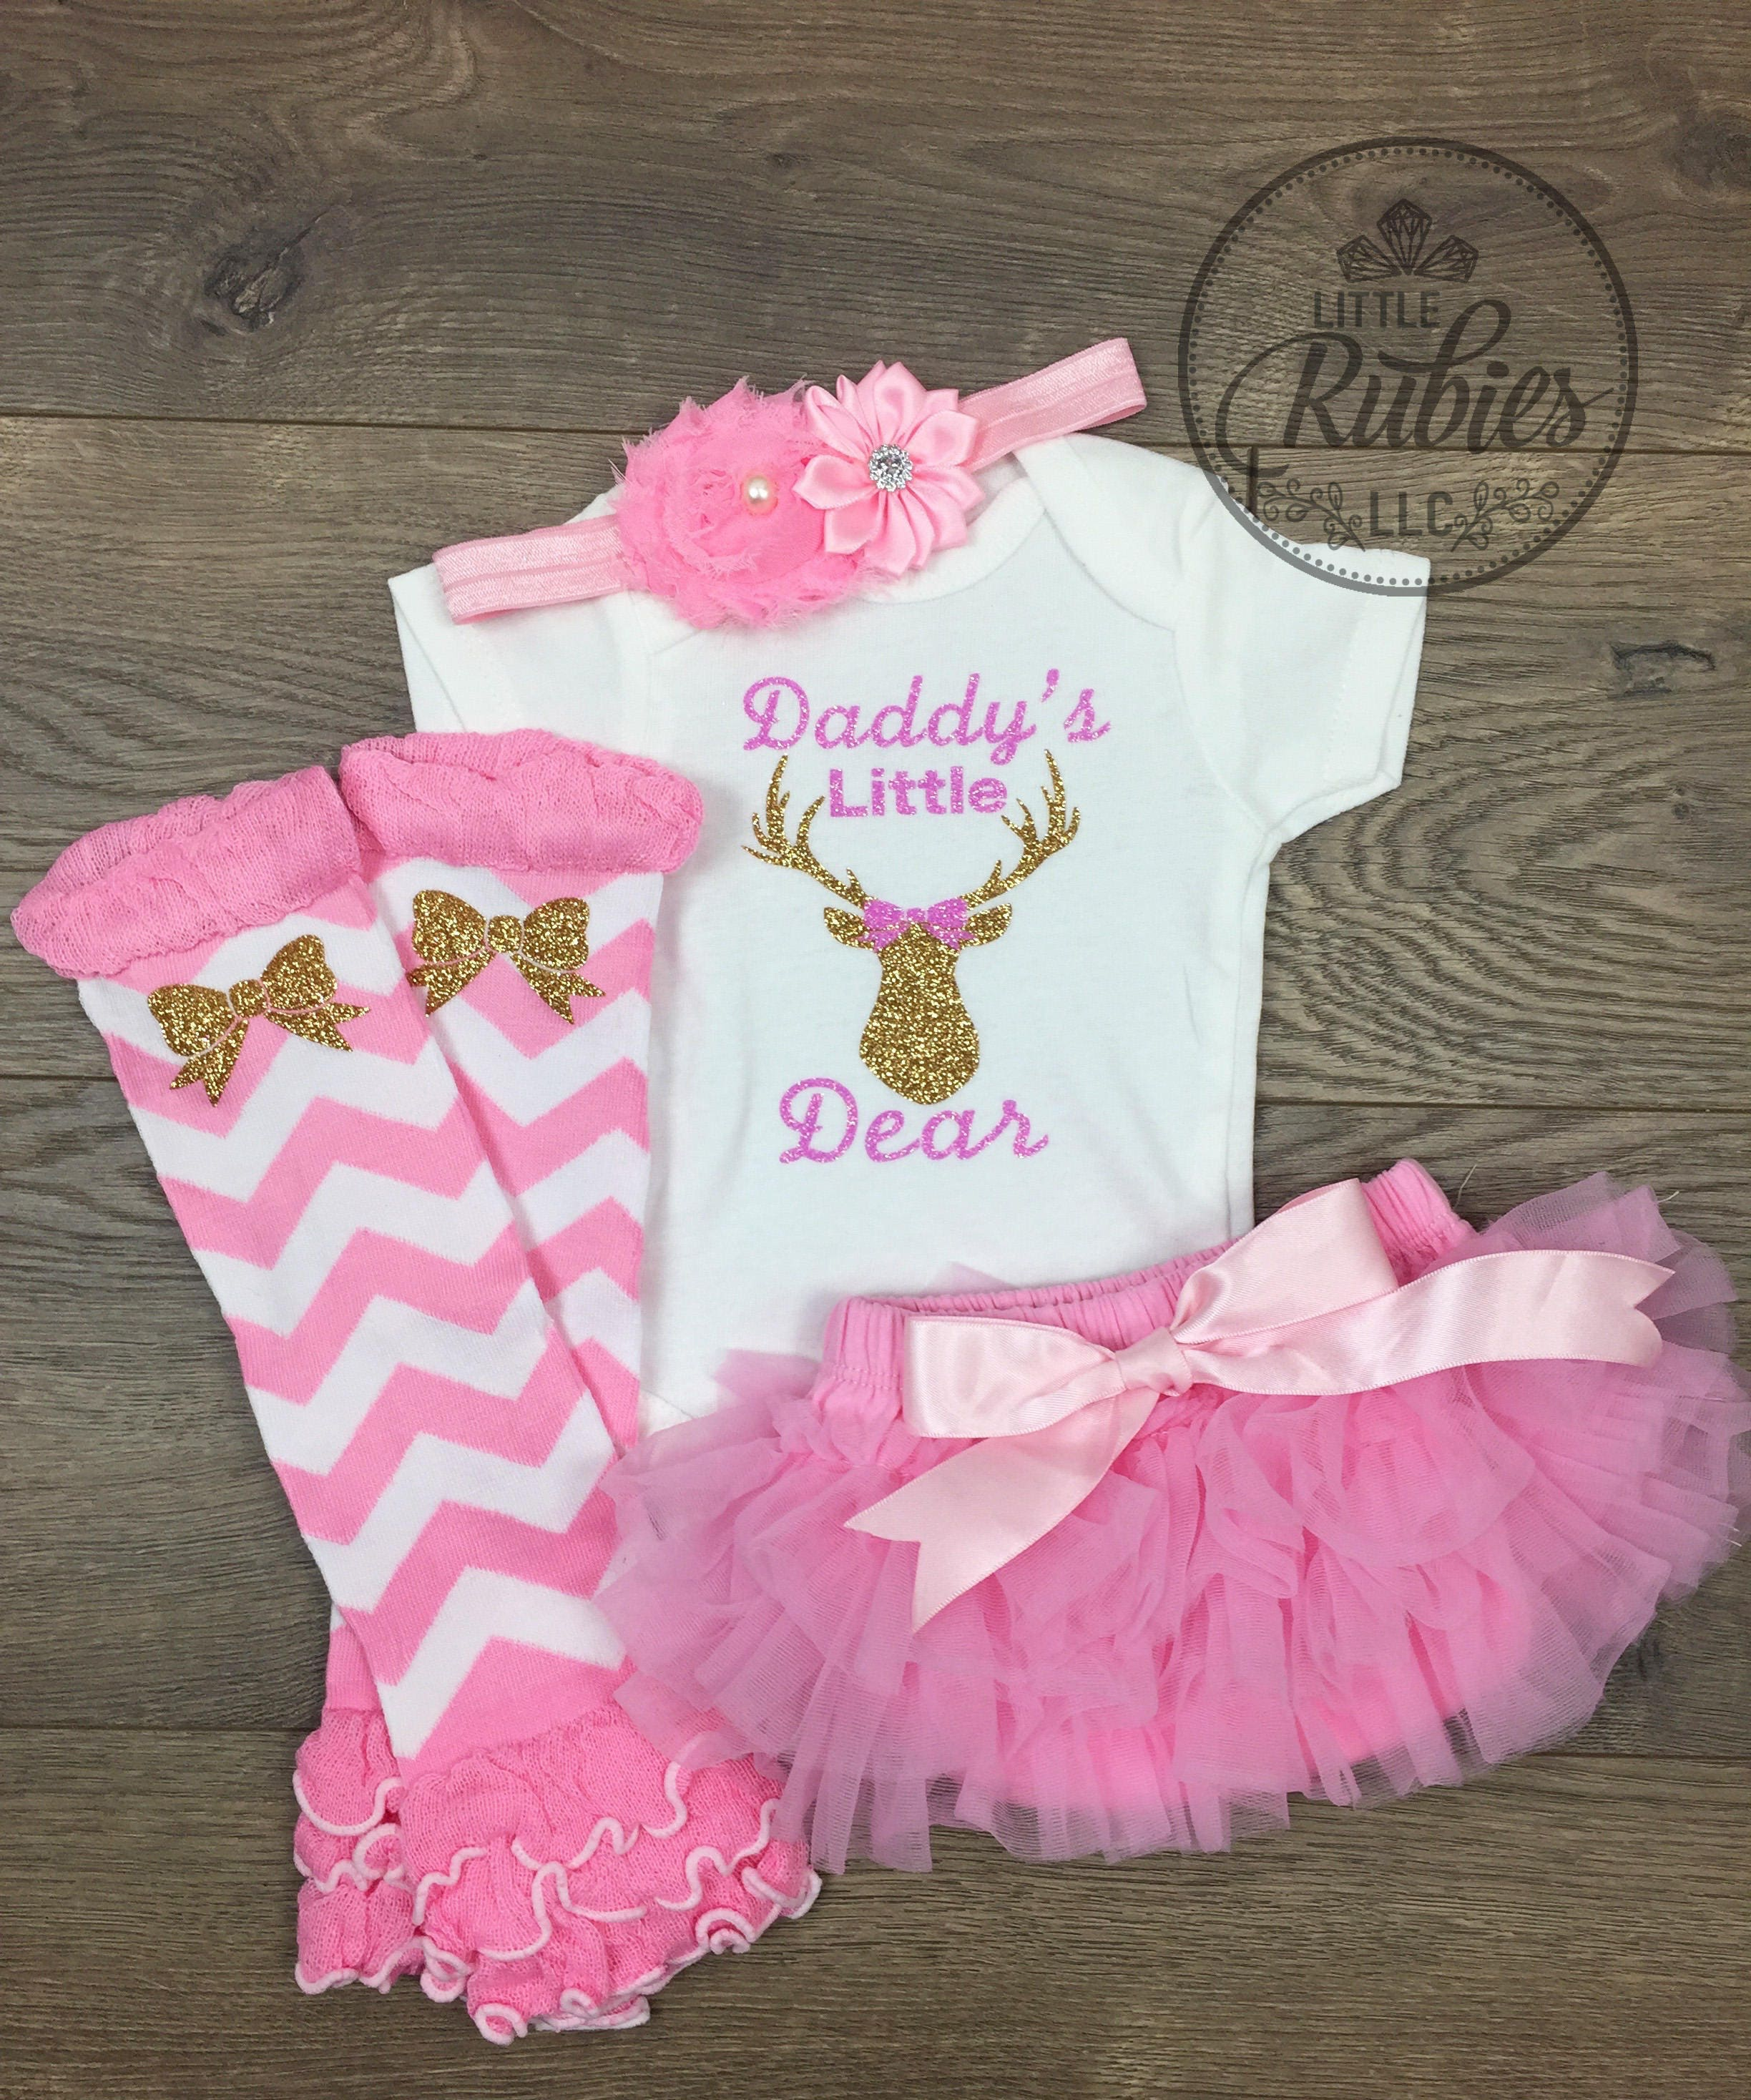 a45cf10d1554 Father s Day outfit for baby girl Daddy s little girl